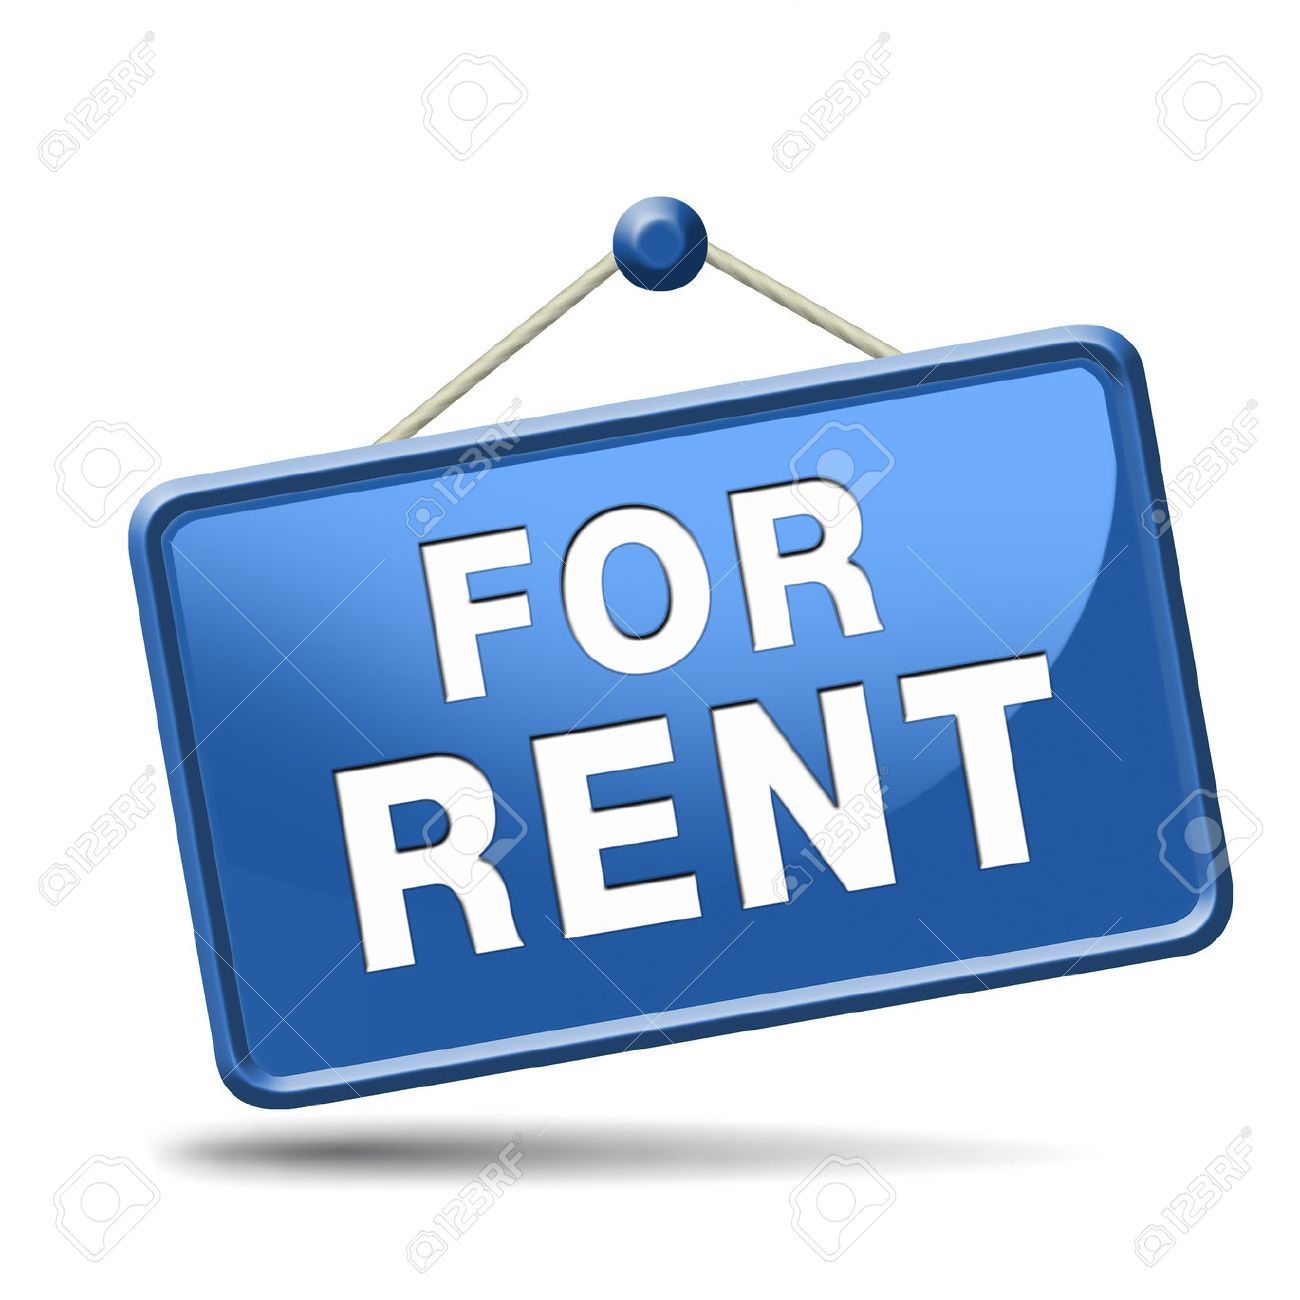 Renting A Apartment for rent sign, renting a house apartment or other real estate